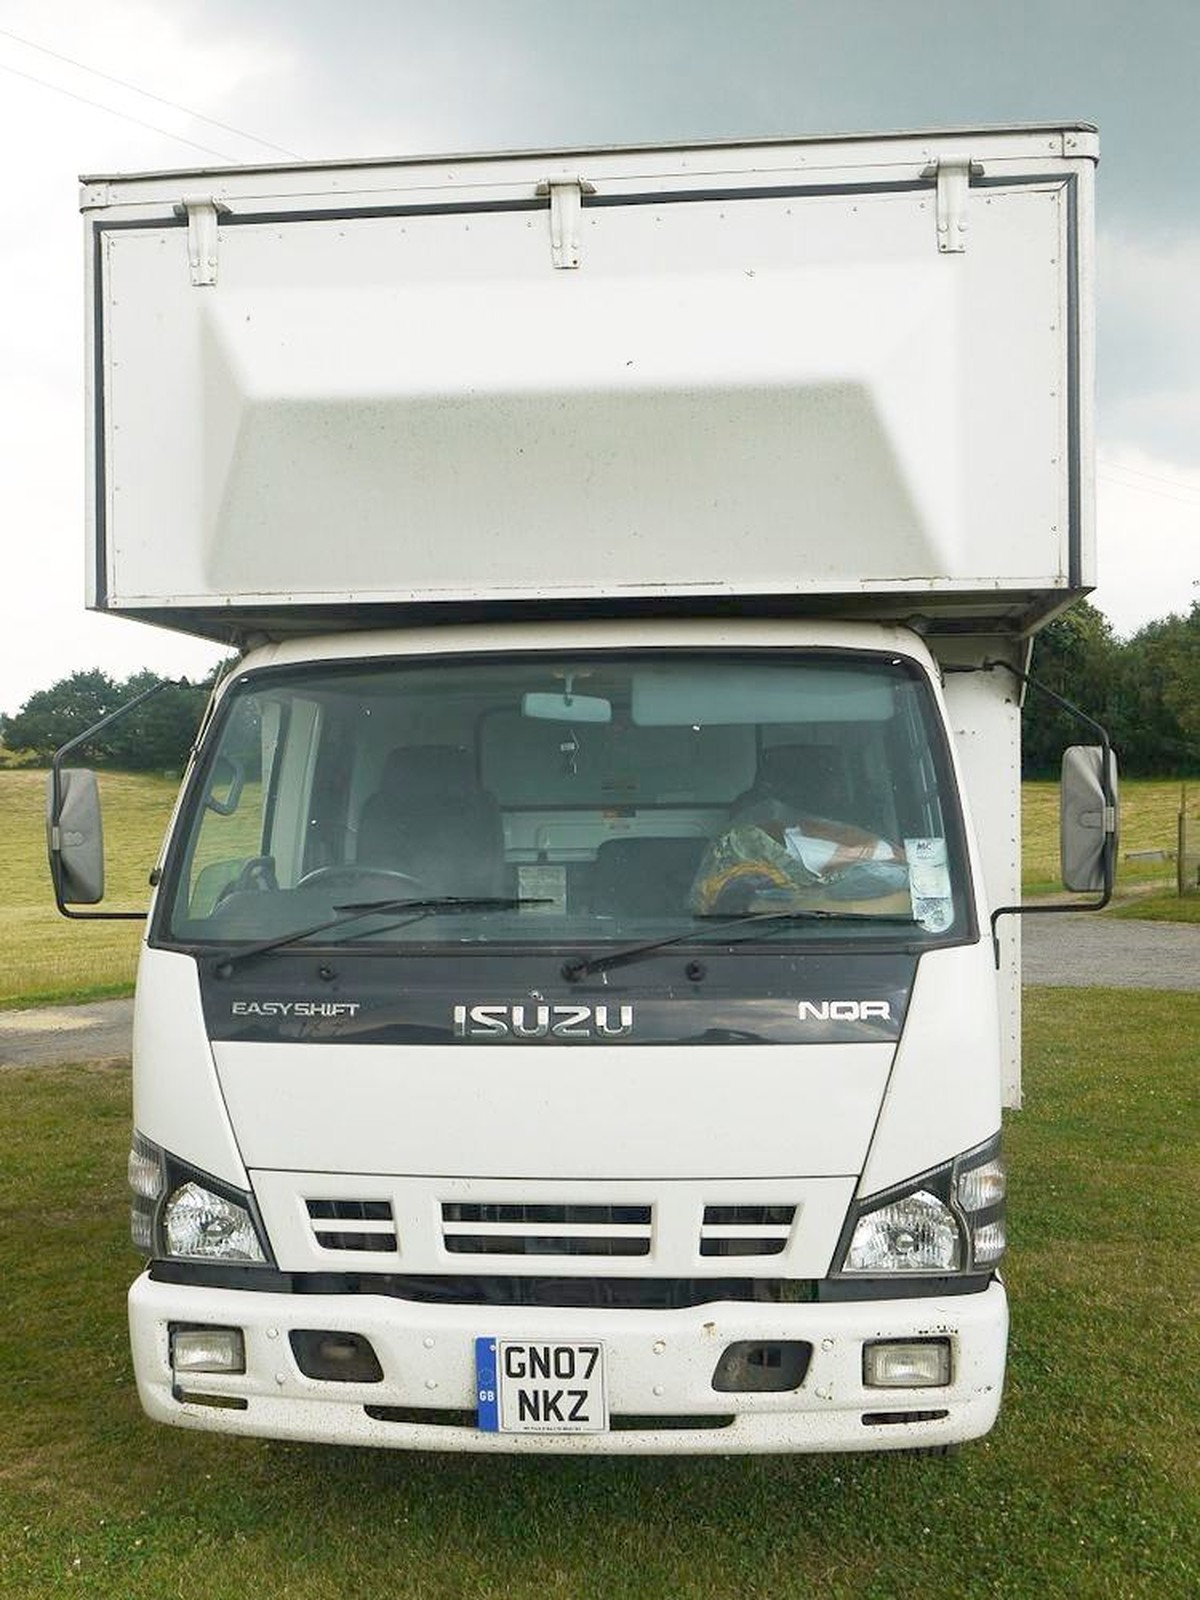 secondhand lorries and vans job lots and miscellaneous isuzu